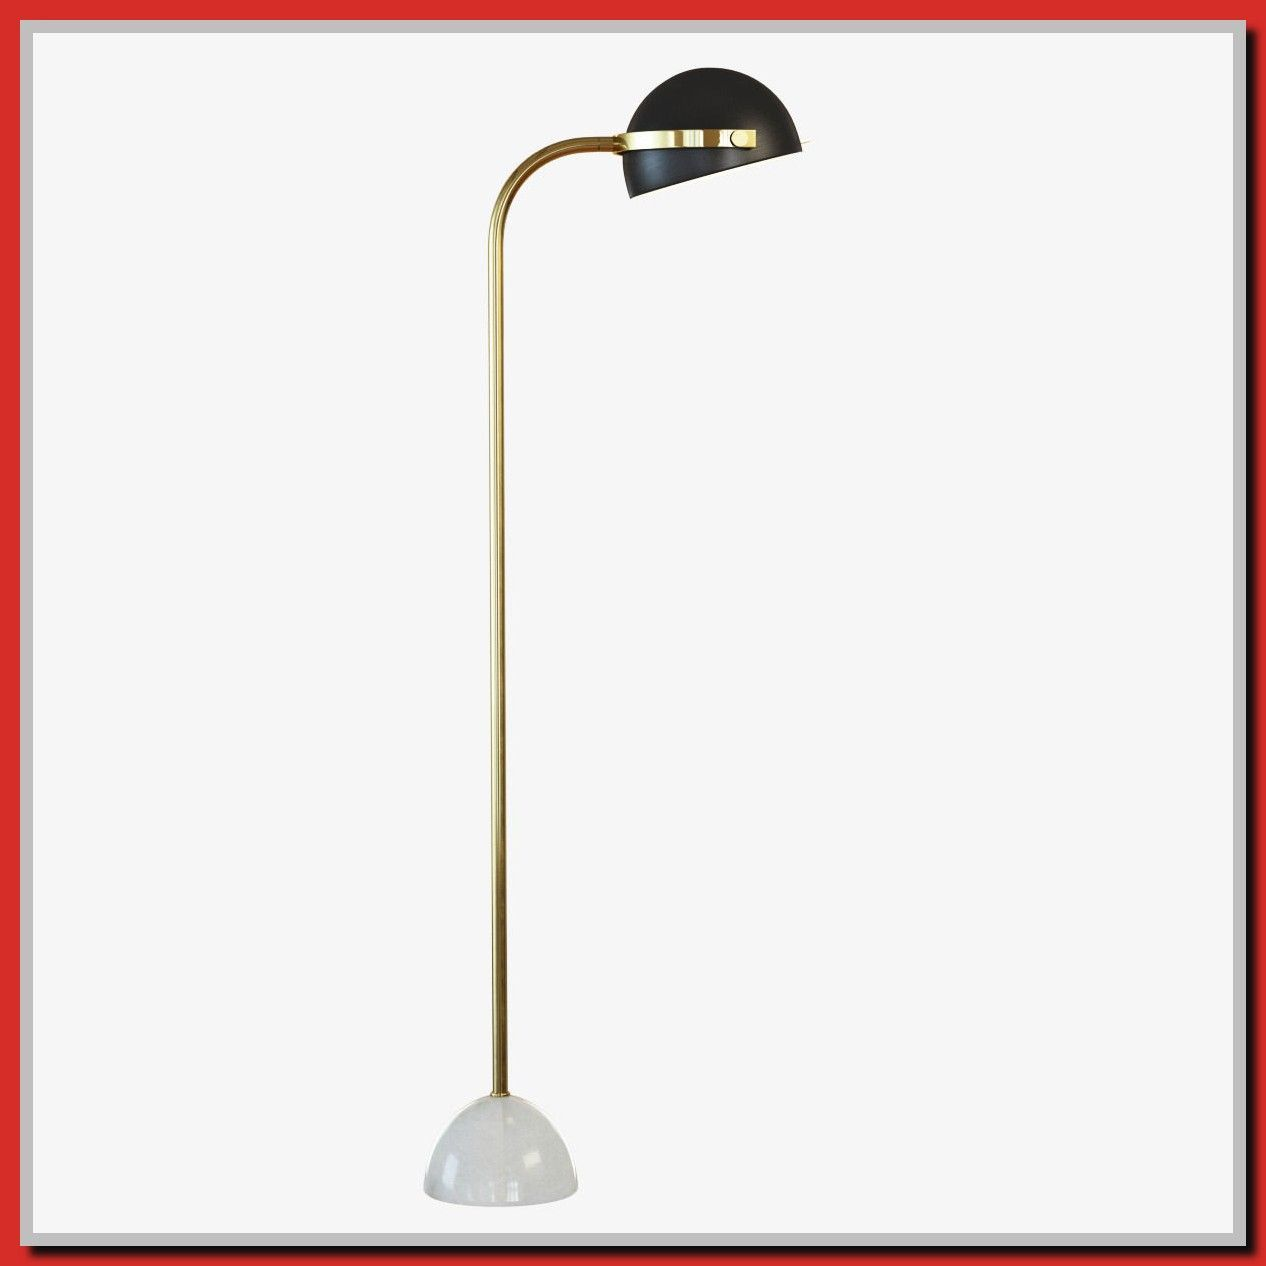 99 Reference Of Floor Lamp Archive 3d In 2020 Lamp Floor Lamp Flooring